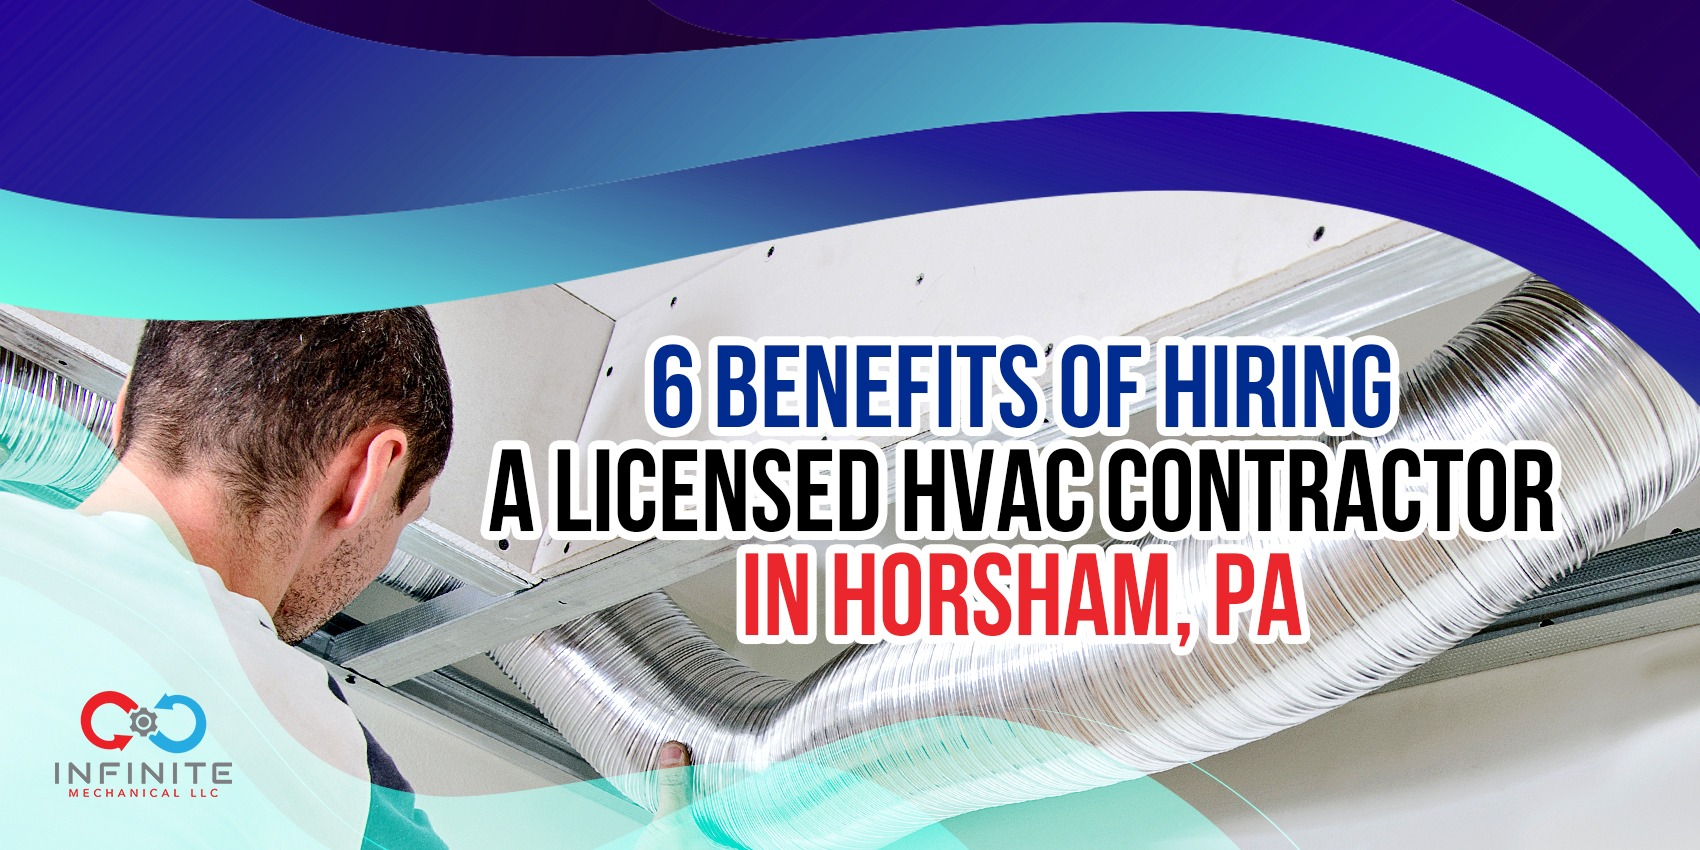 6 Benefits of Hiring a Licensed HVAC Contractor in Horsham, PA